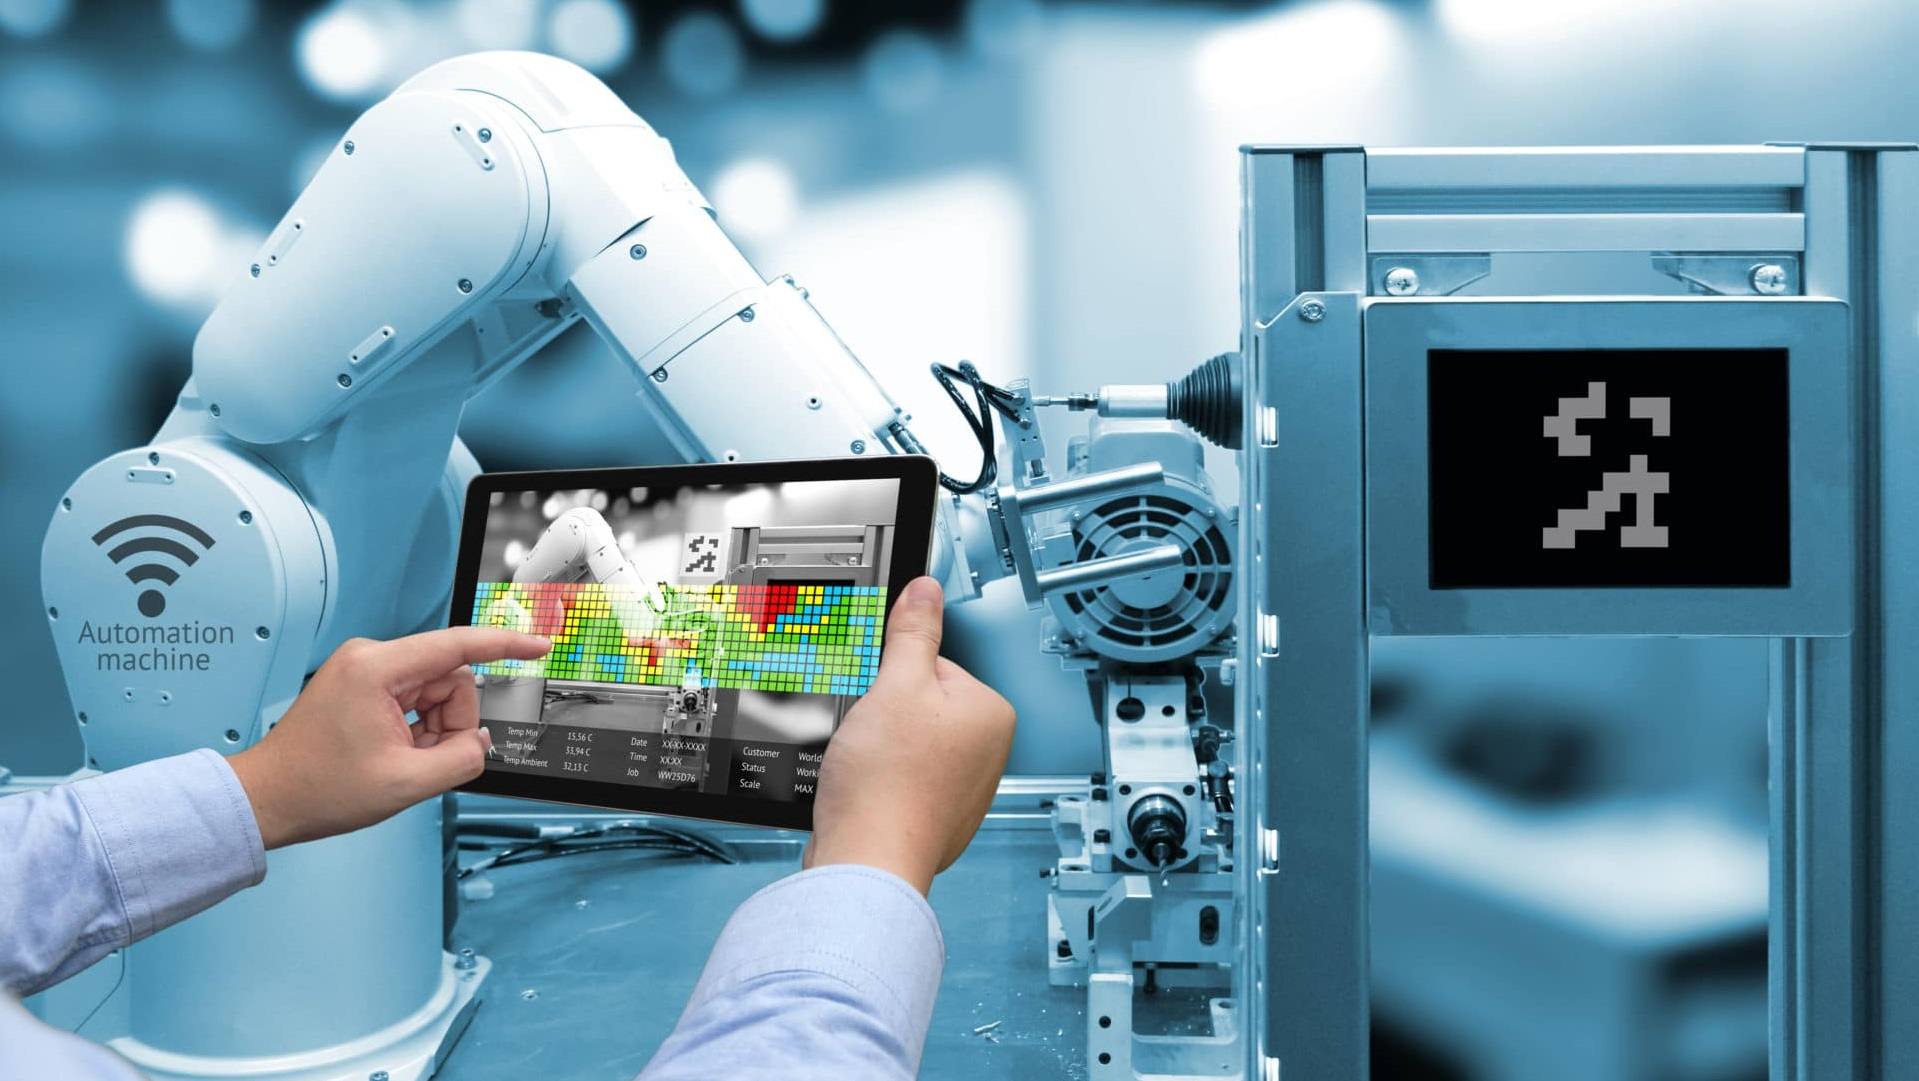 The digital transformation of manufacturing